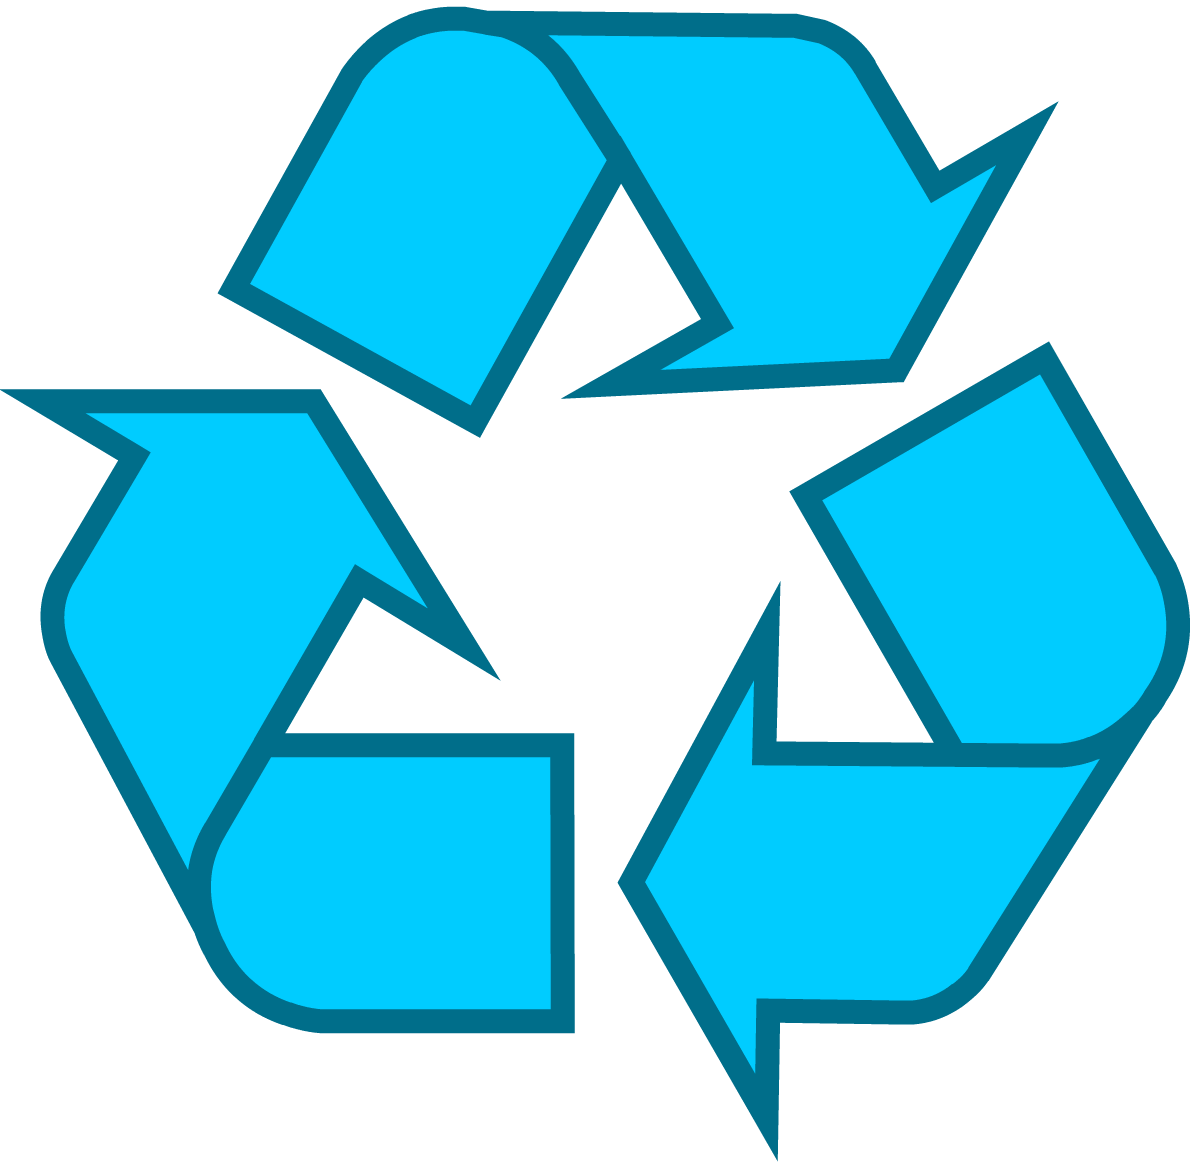 W transparent blue. Download recycling symbol the